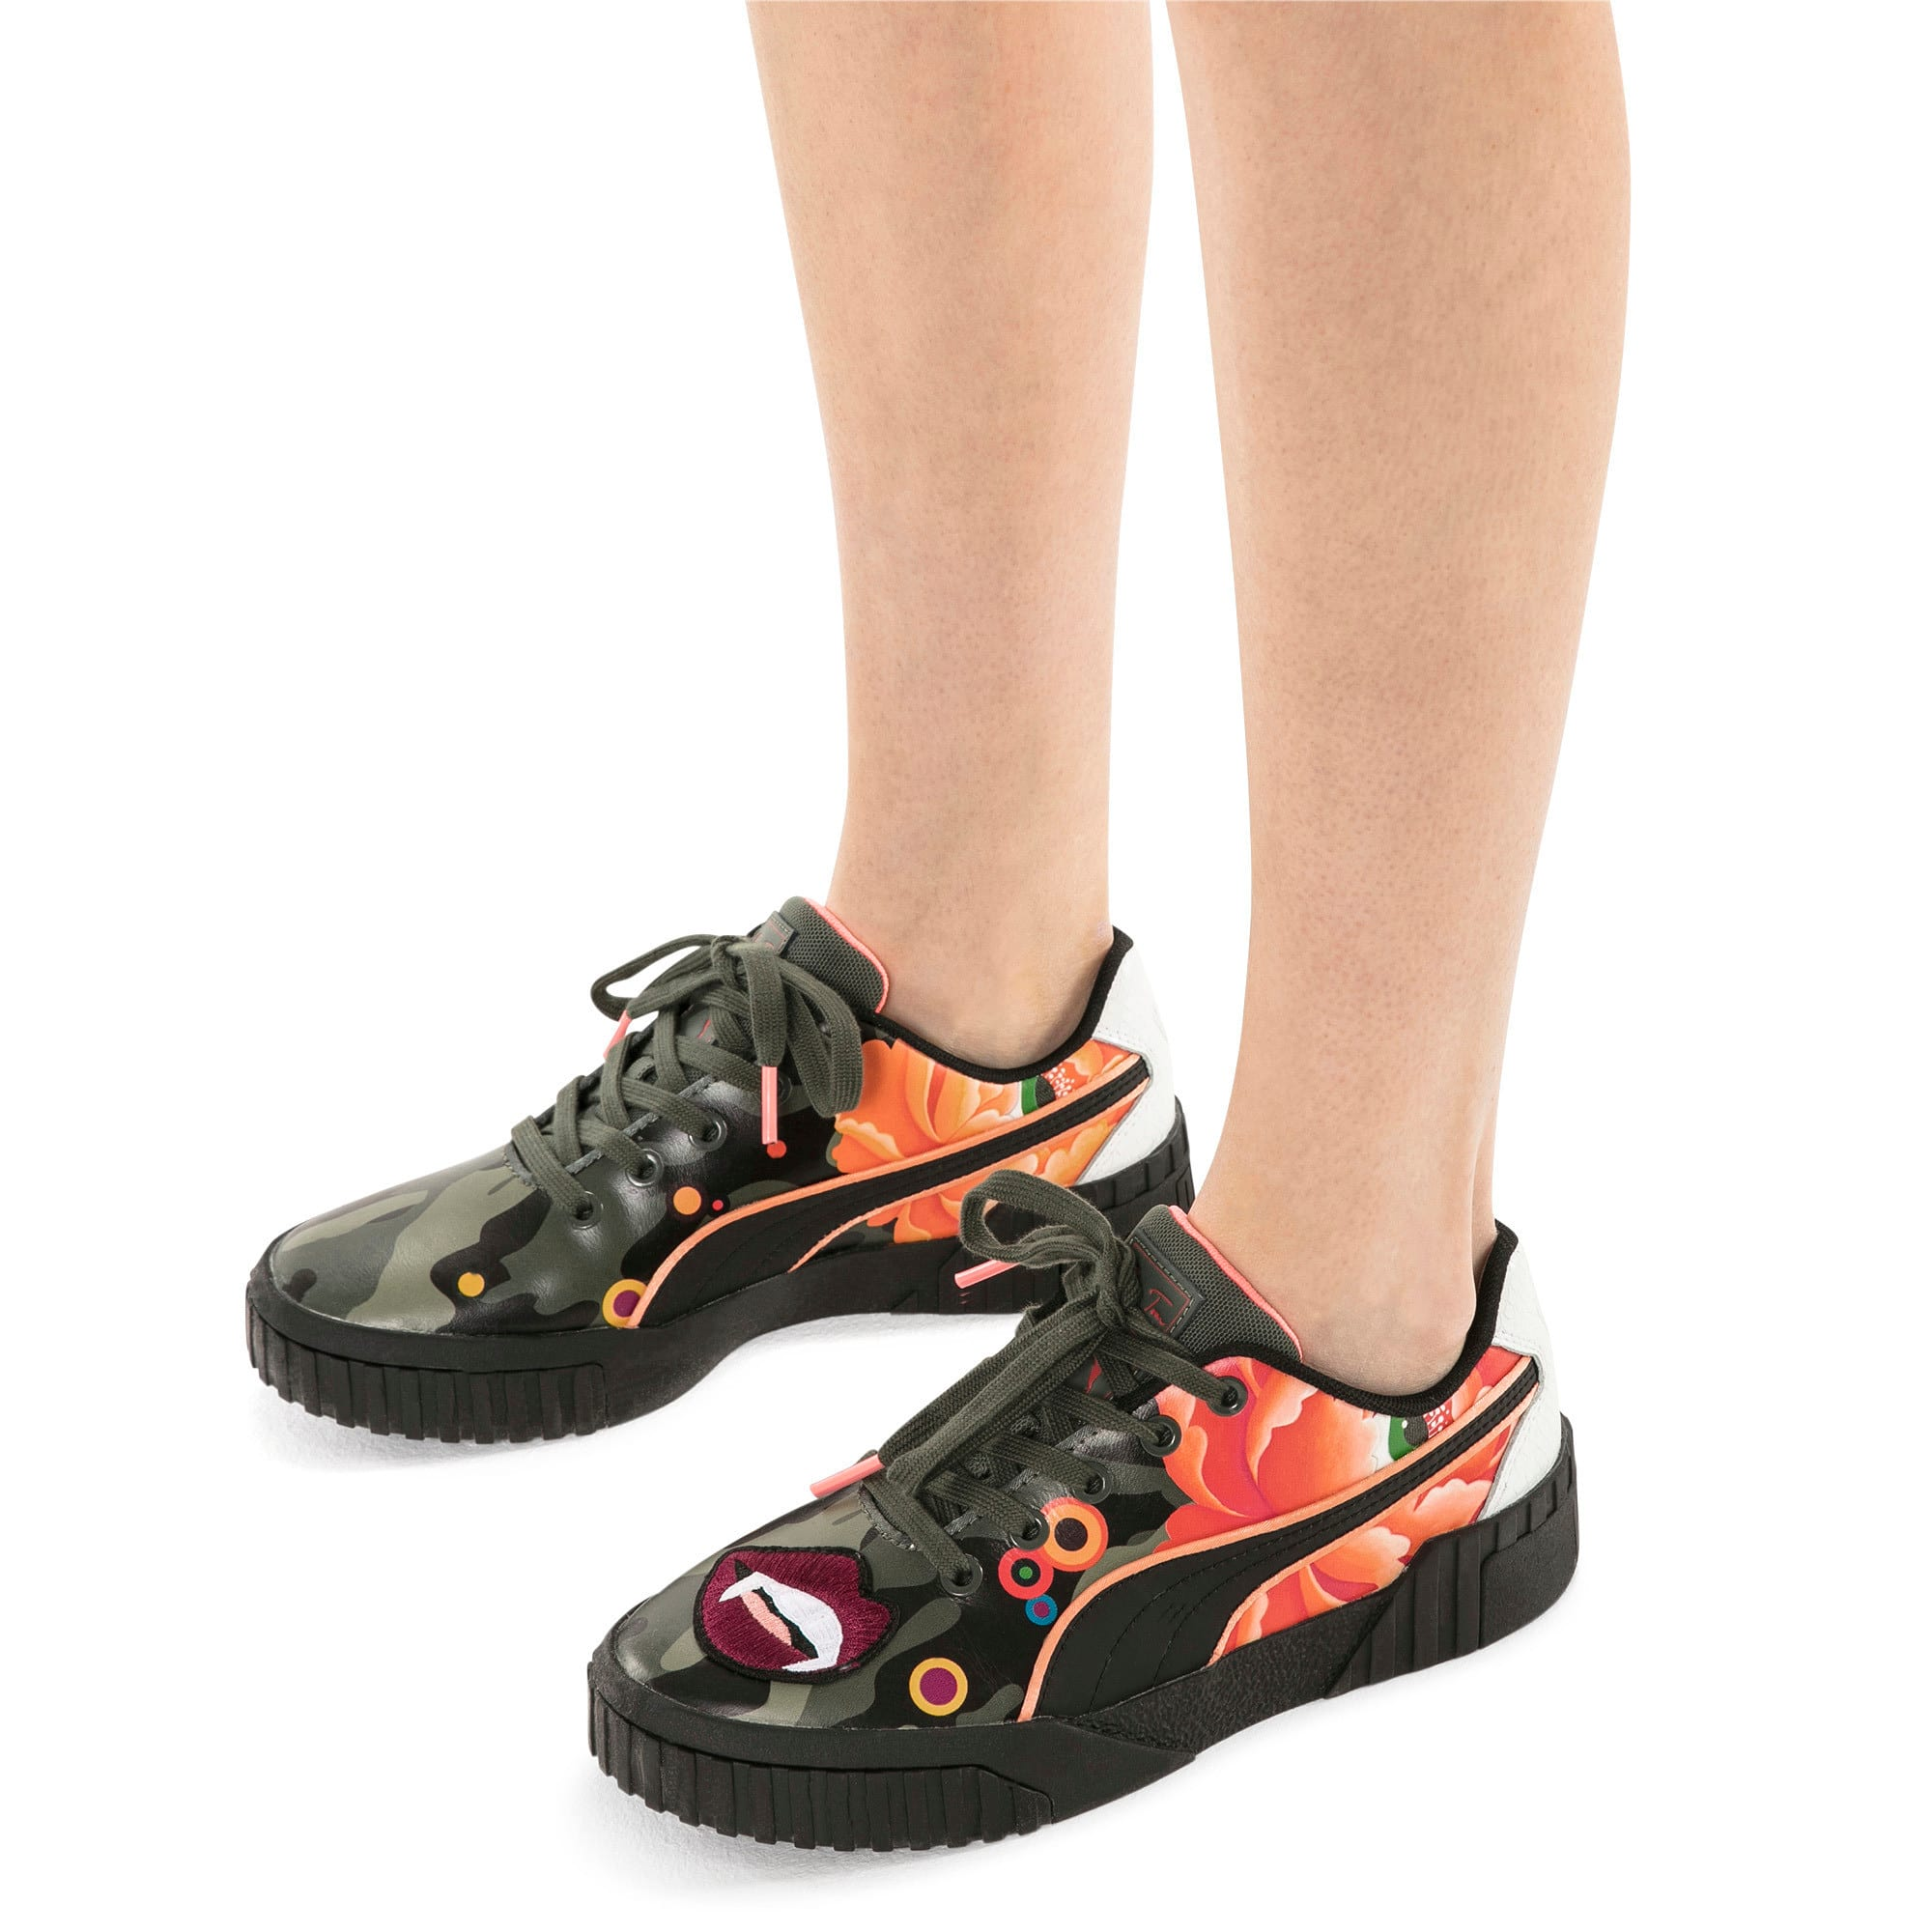 Thumbnail 2 of PUMA x SUE TSAI Cali 'Peonies Camo' sneakers voor dames, Puma Black-Puma Black, medium